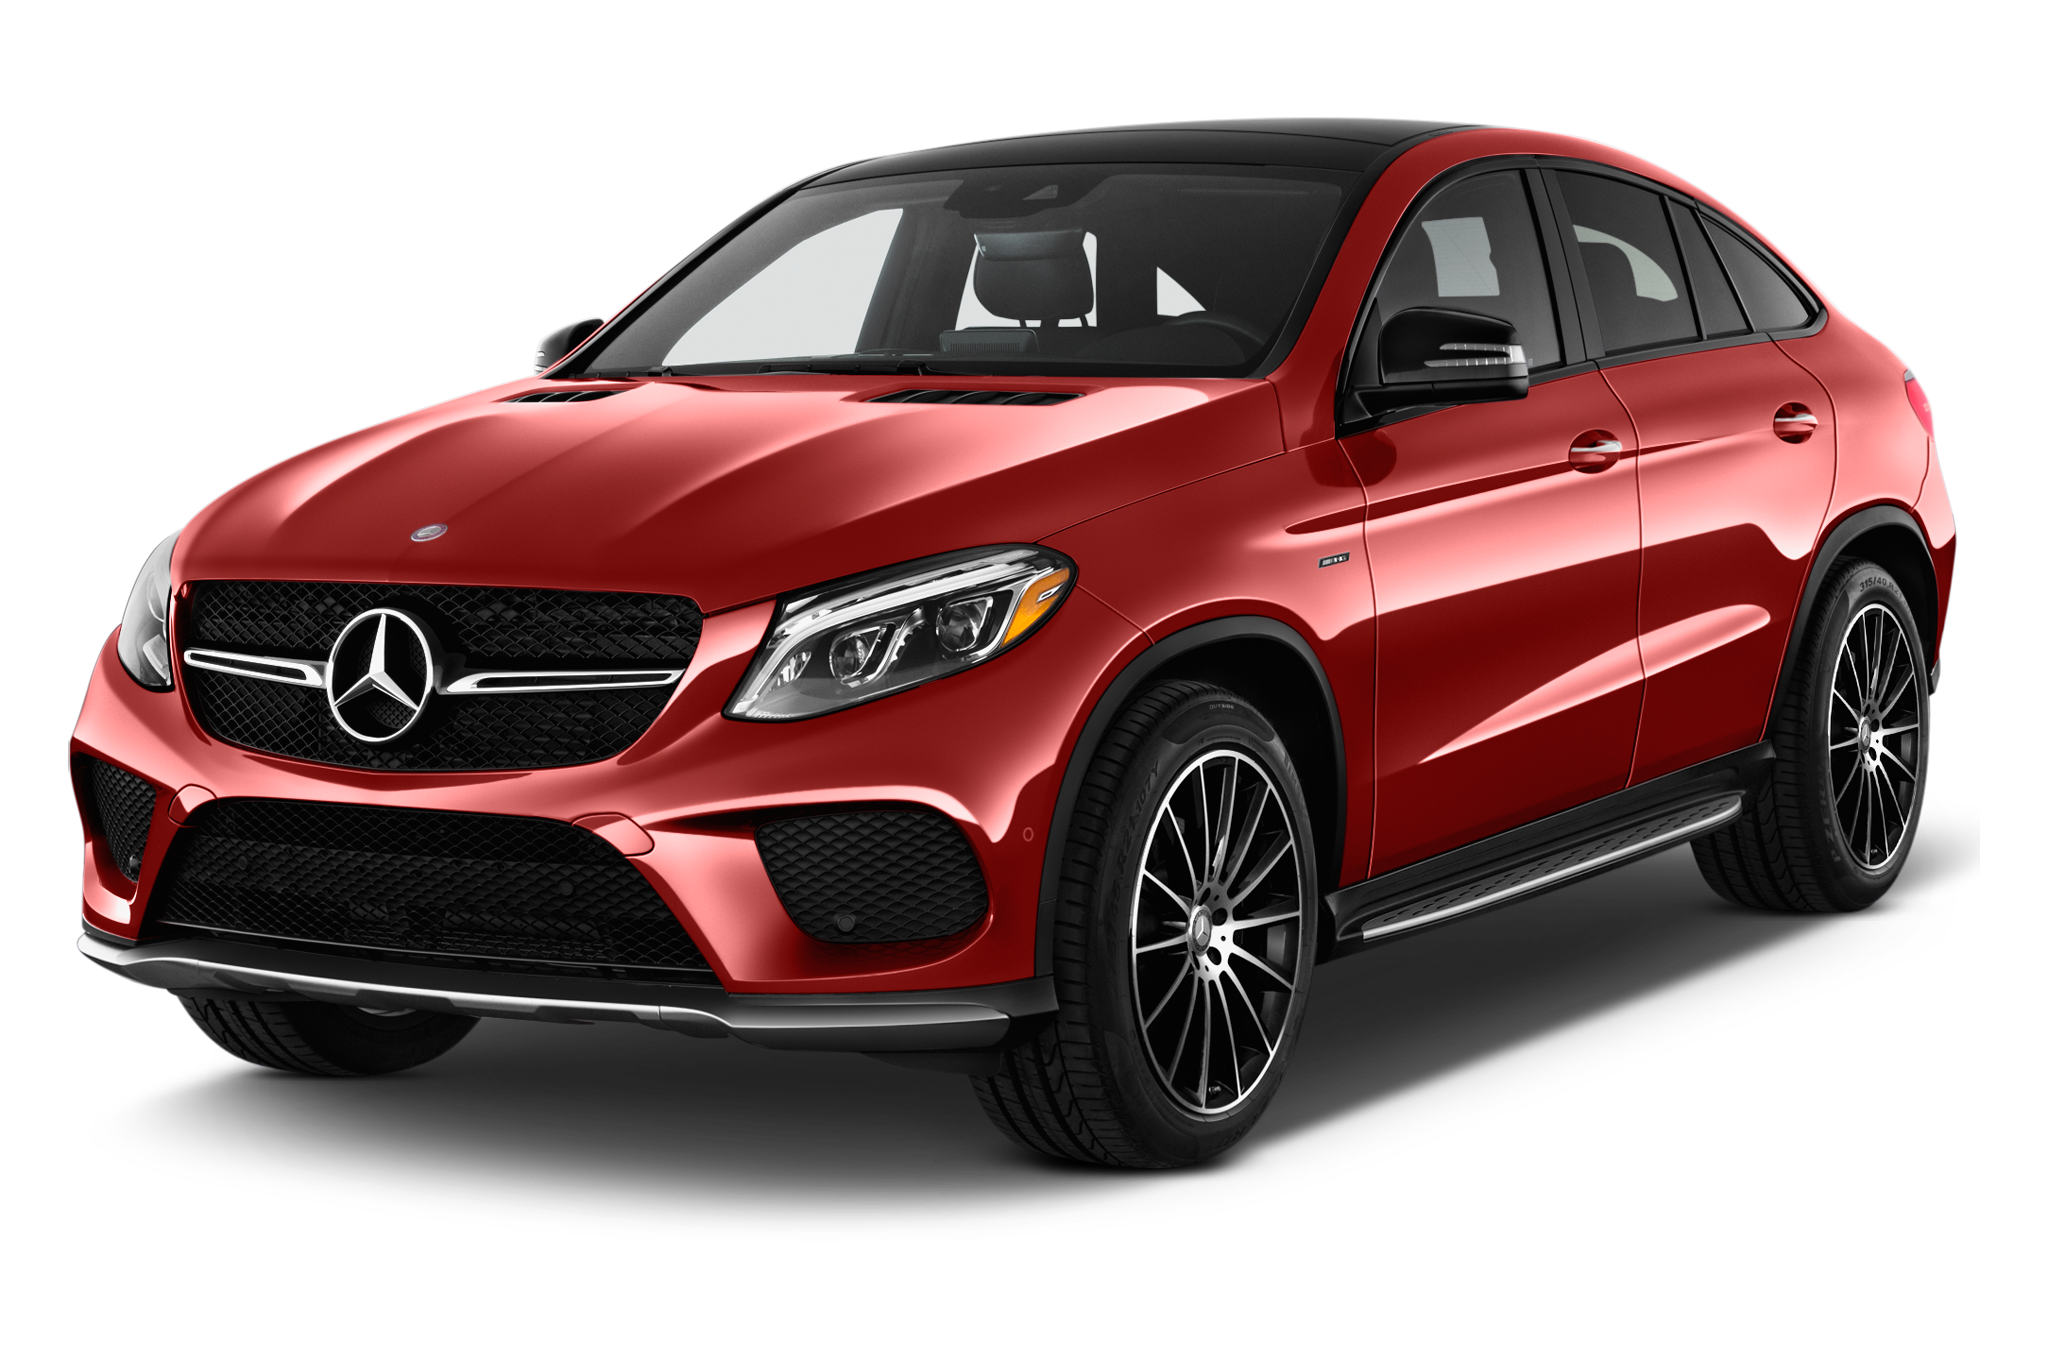 2017 Mercedes-Benz GLE Coupe Mercedes-AMG GLE 43 4MATIC ...